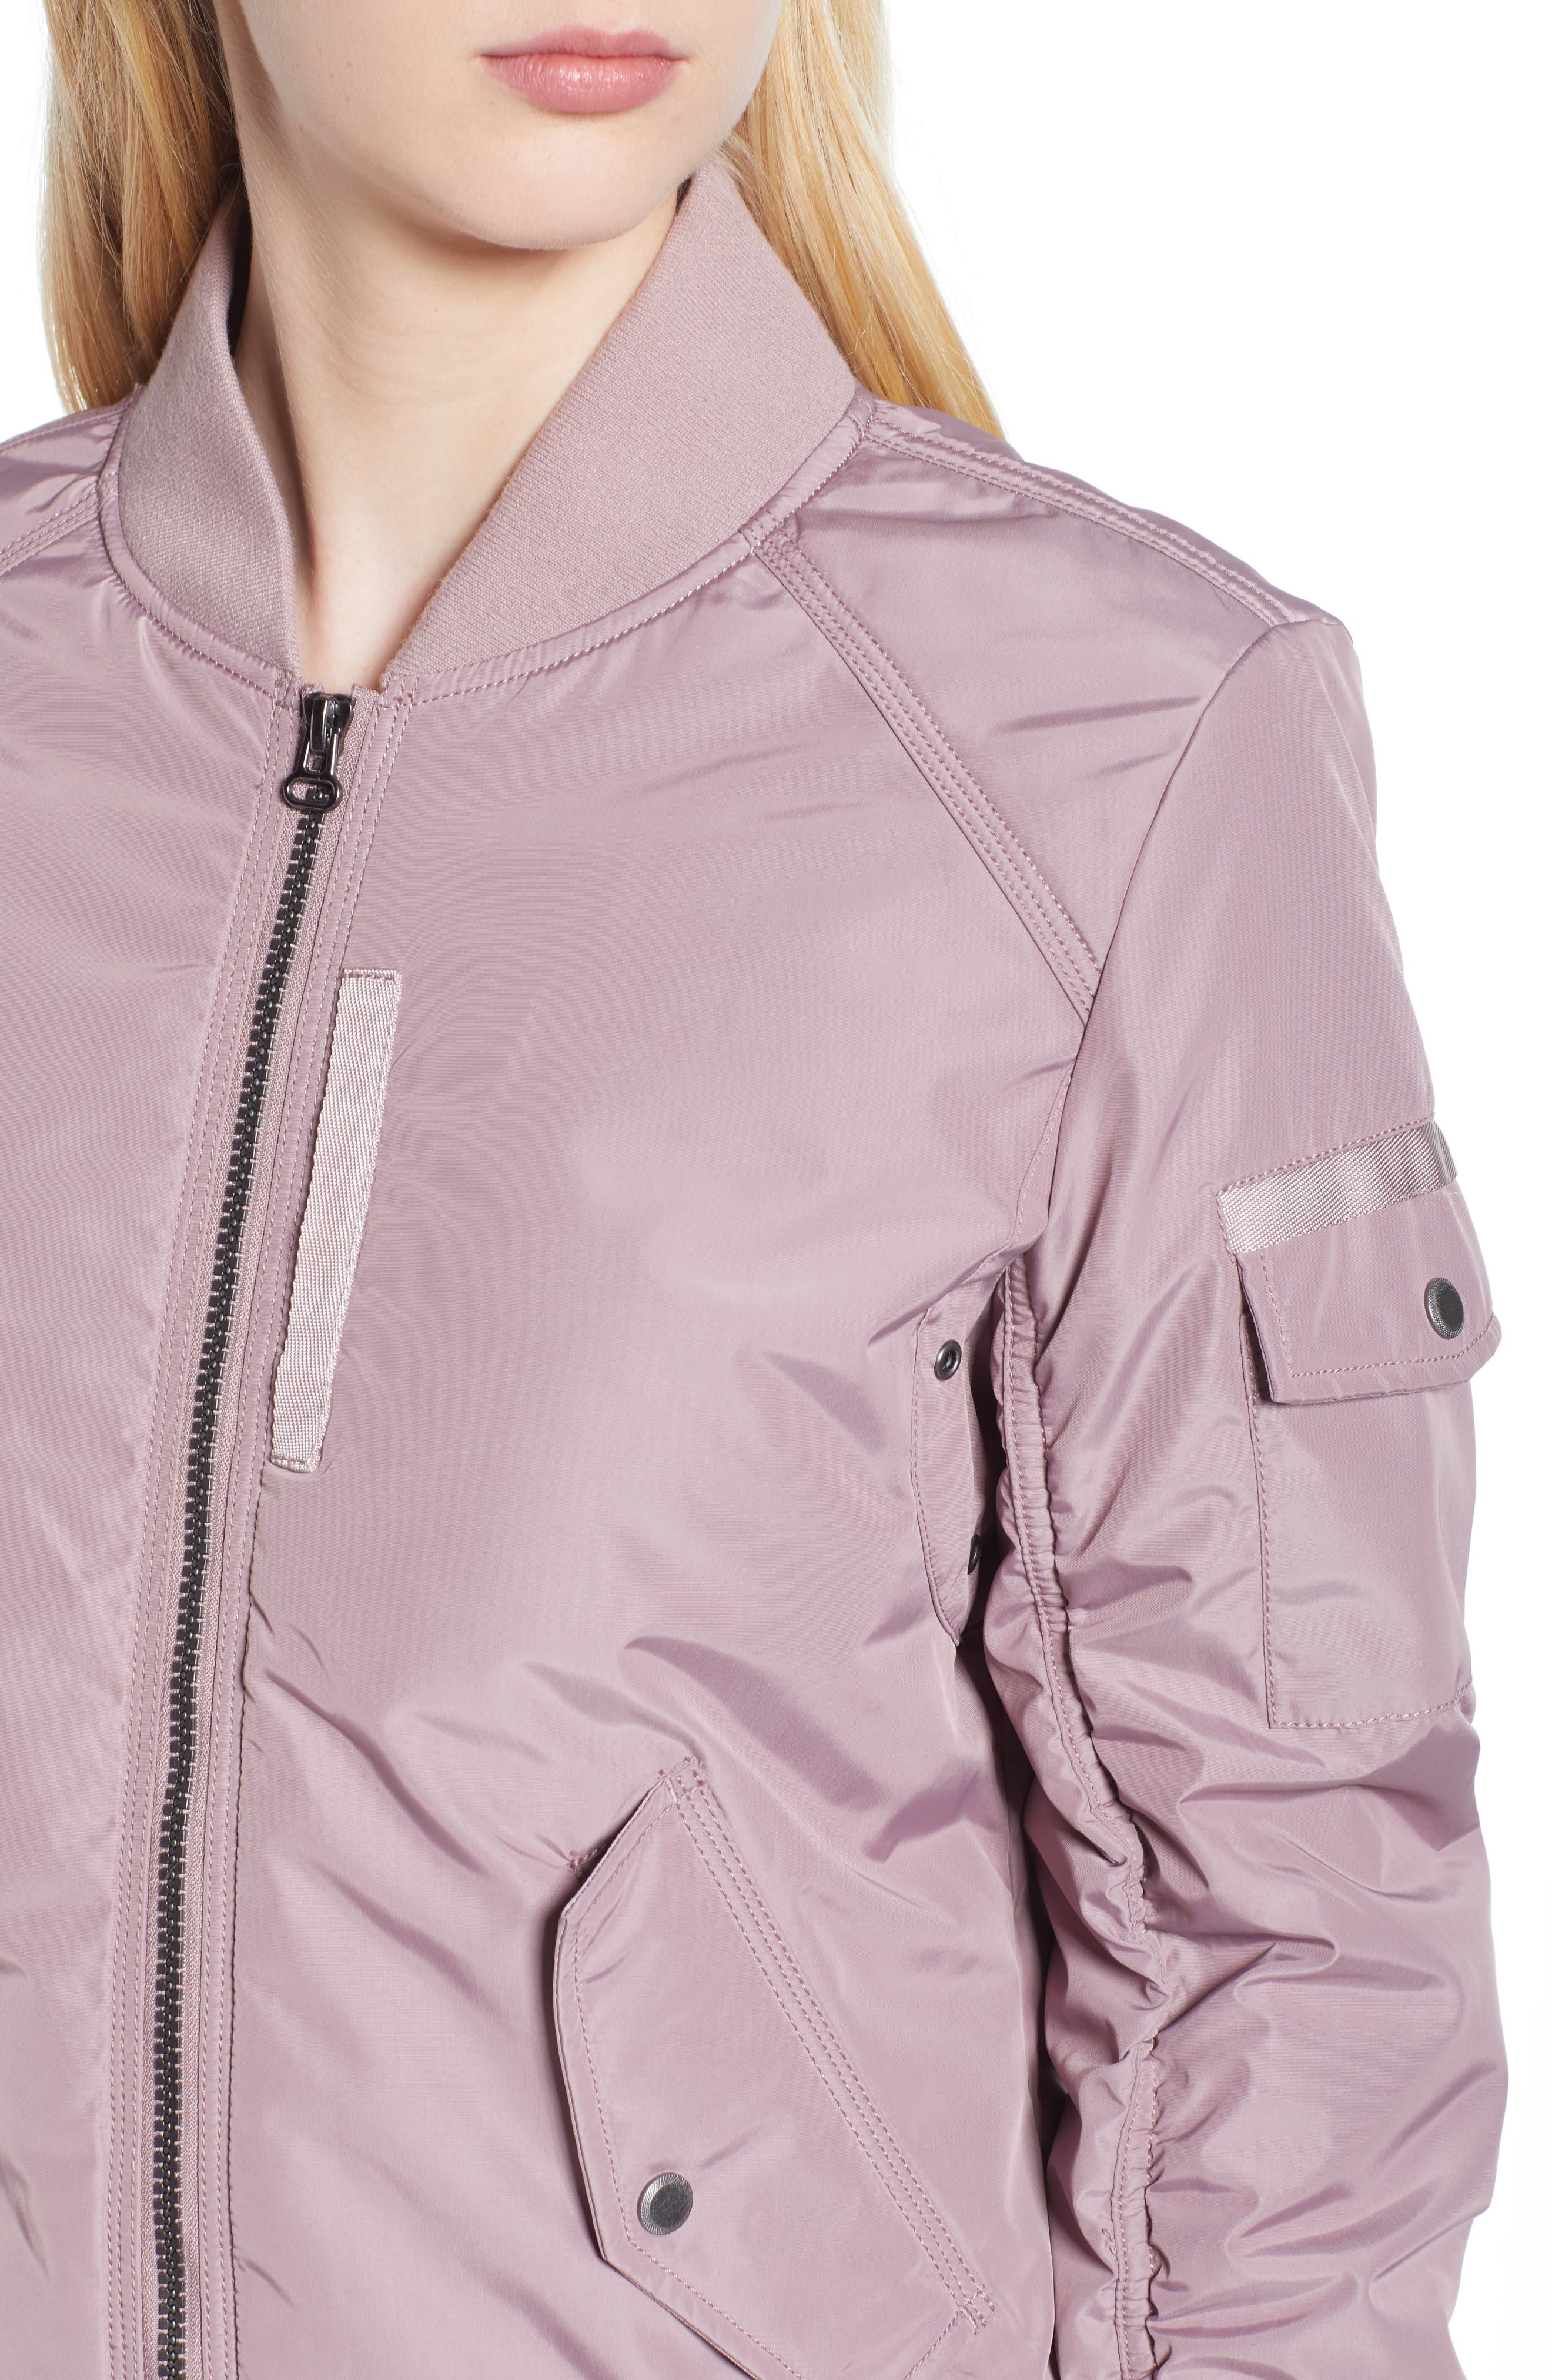 Foster Nylon Twill Bomber Jacket,                             Alternate thumbnail 13, color,